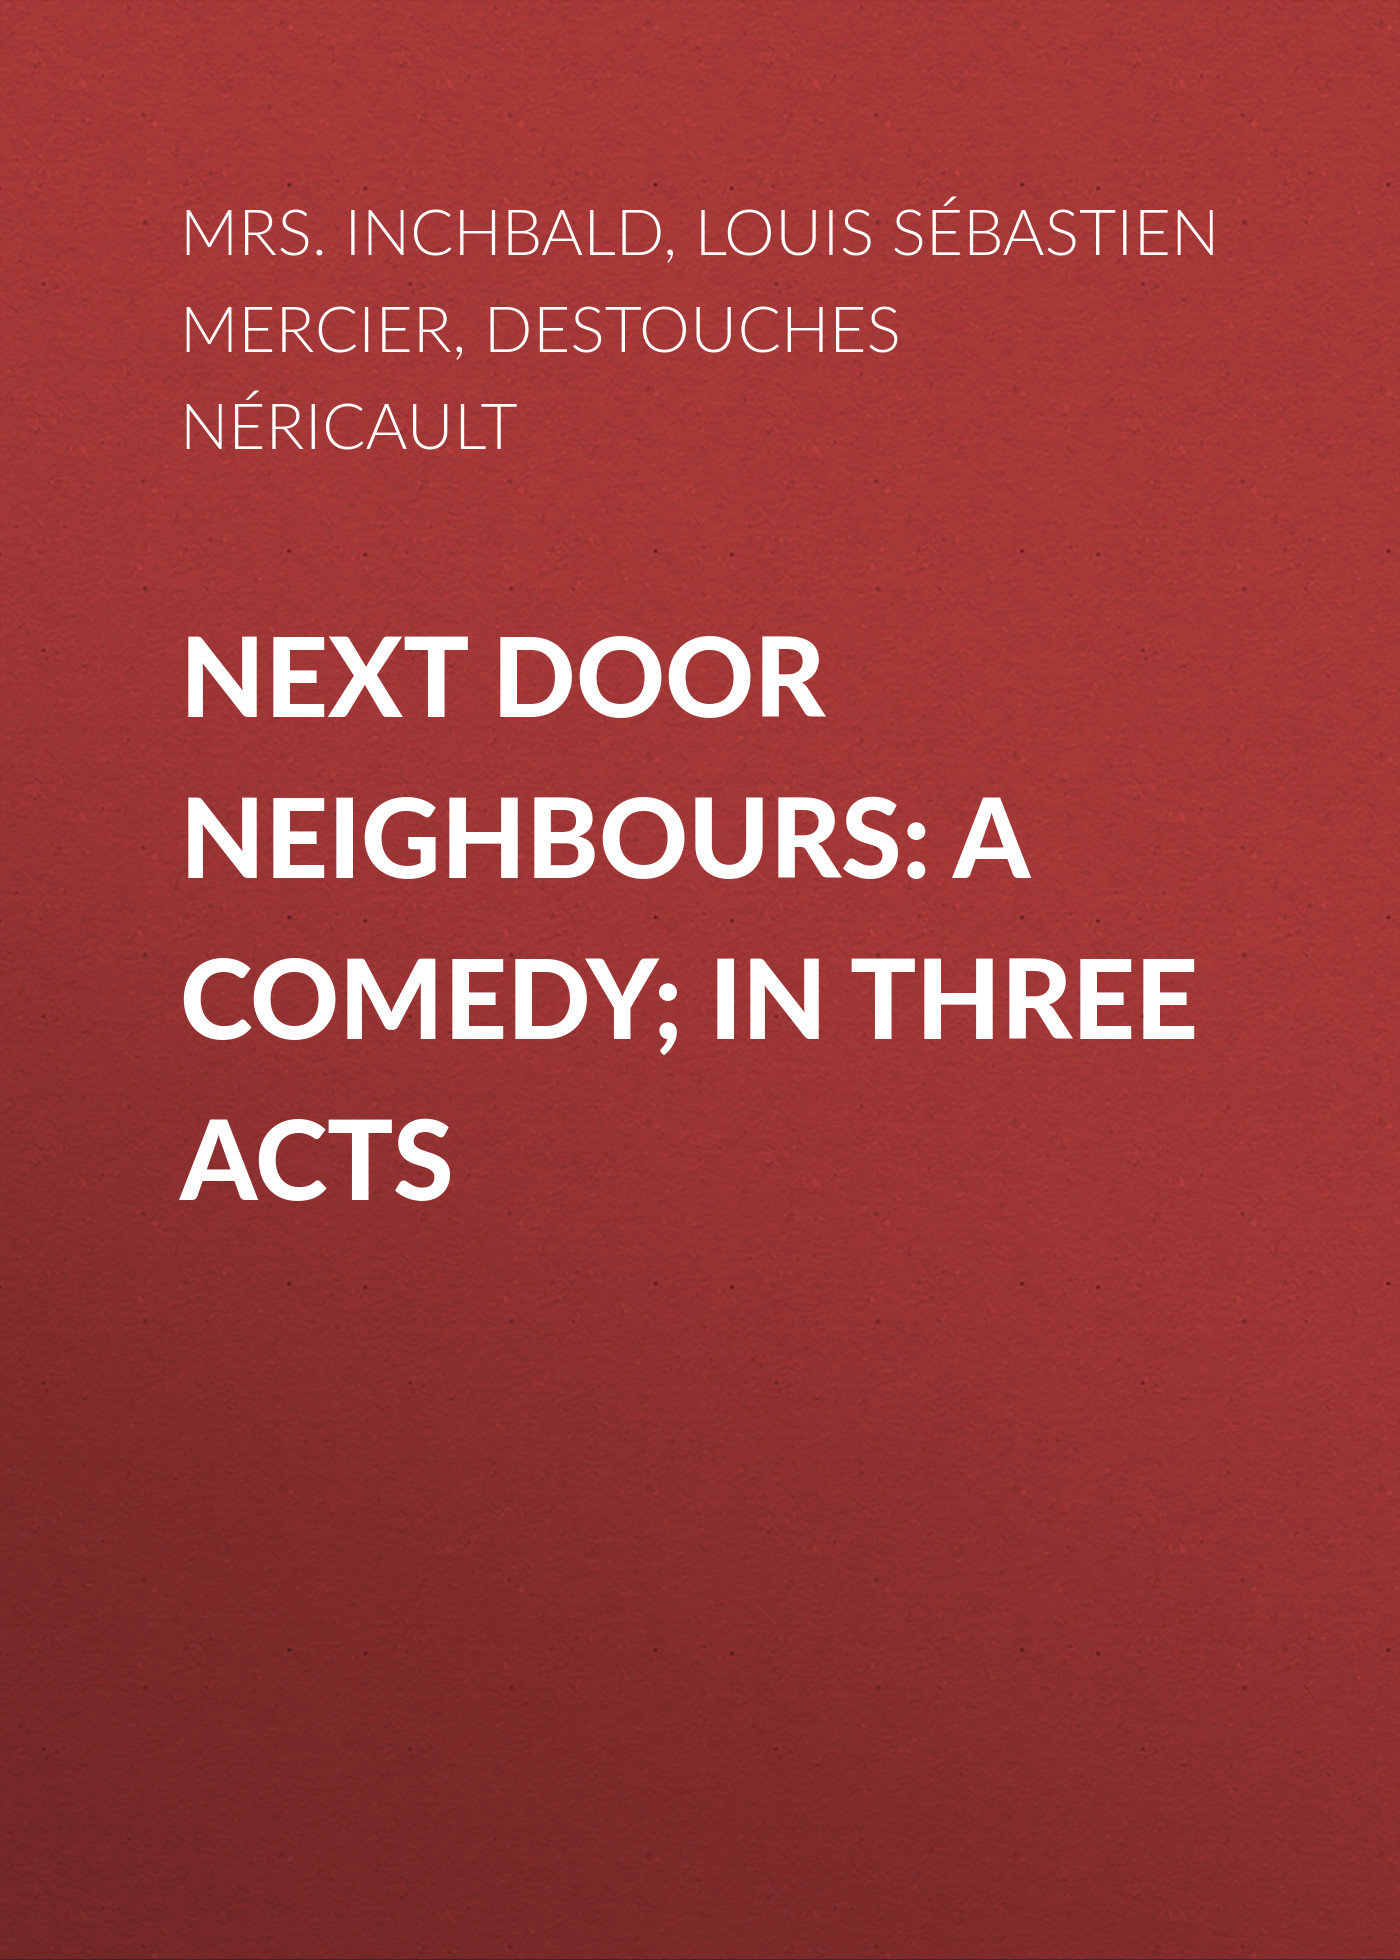 Louis Sébastien Mercier Next Door Neighbours: A Comedy; In Three Acts